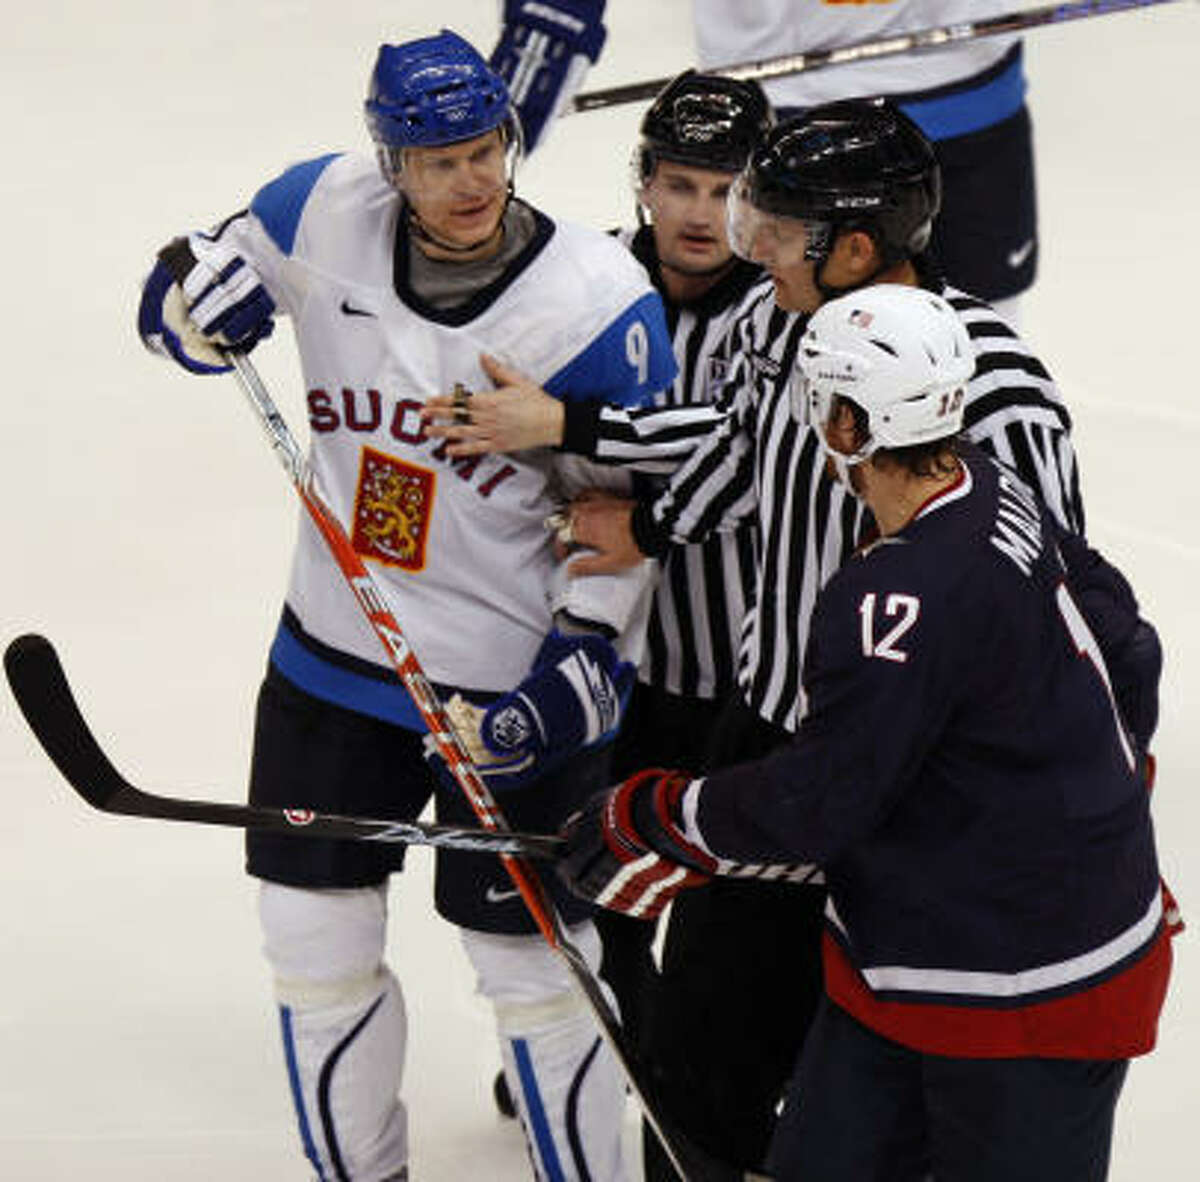 Linesmen separate FInland's Mikko Koivu and Ryan Malone of the United States after Malone's high sticking penalty in the third period.